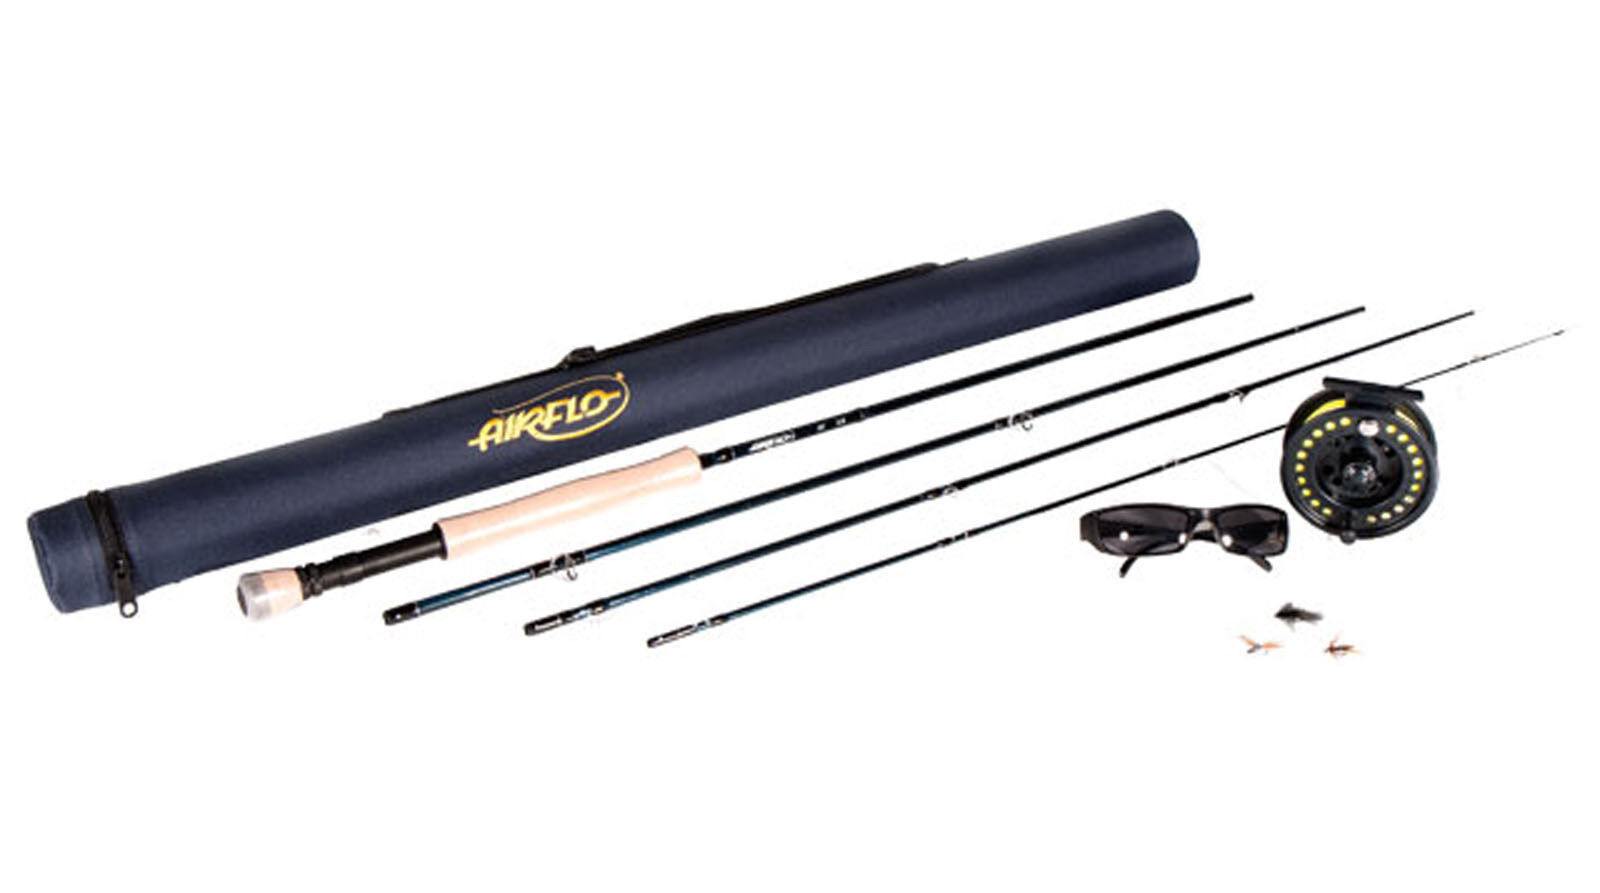 Airflo 8ft 6  4 5 Fly Fishing Kit Rod Reel Float Line Fly Box & Tube Sunglasses